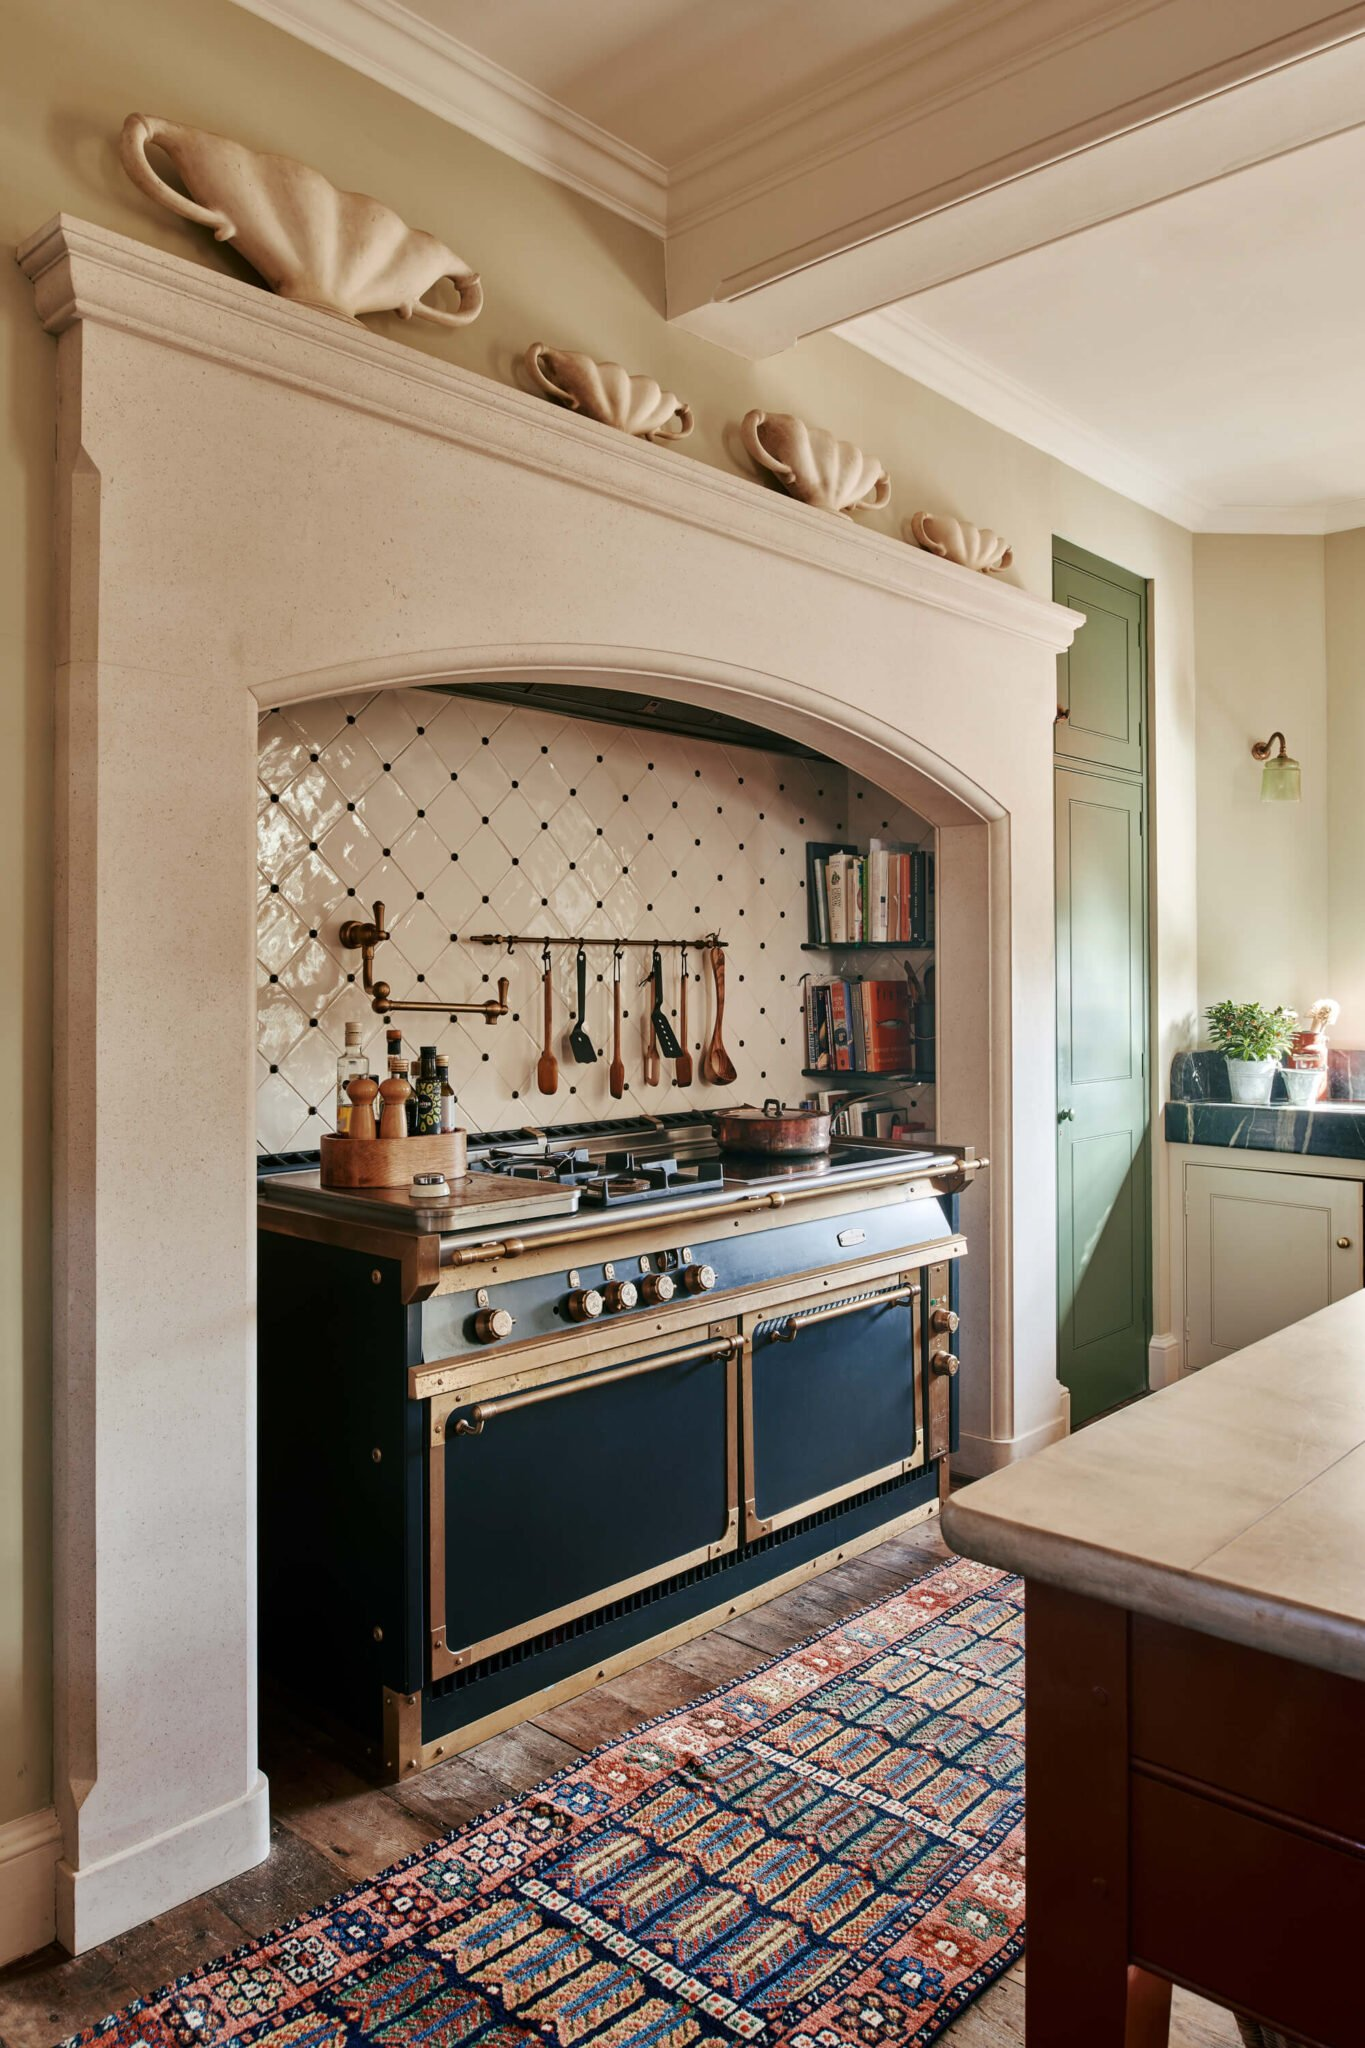 Large range oven in Limestone fireplace